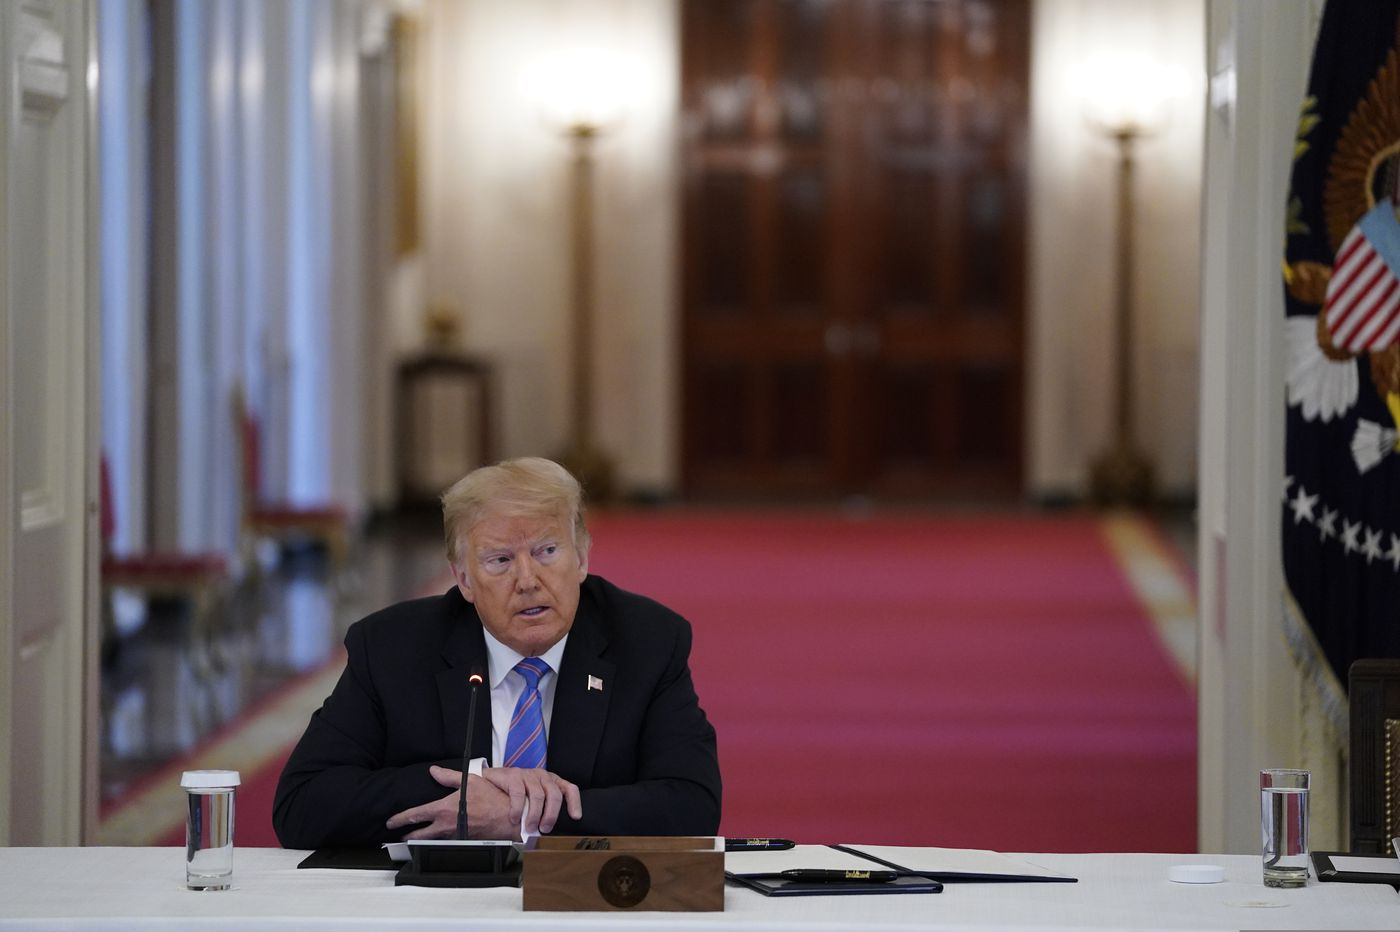 The White House was aware of Russian bounties in 2019, AP sources say